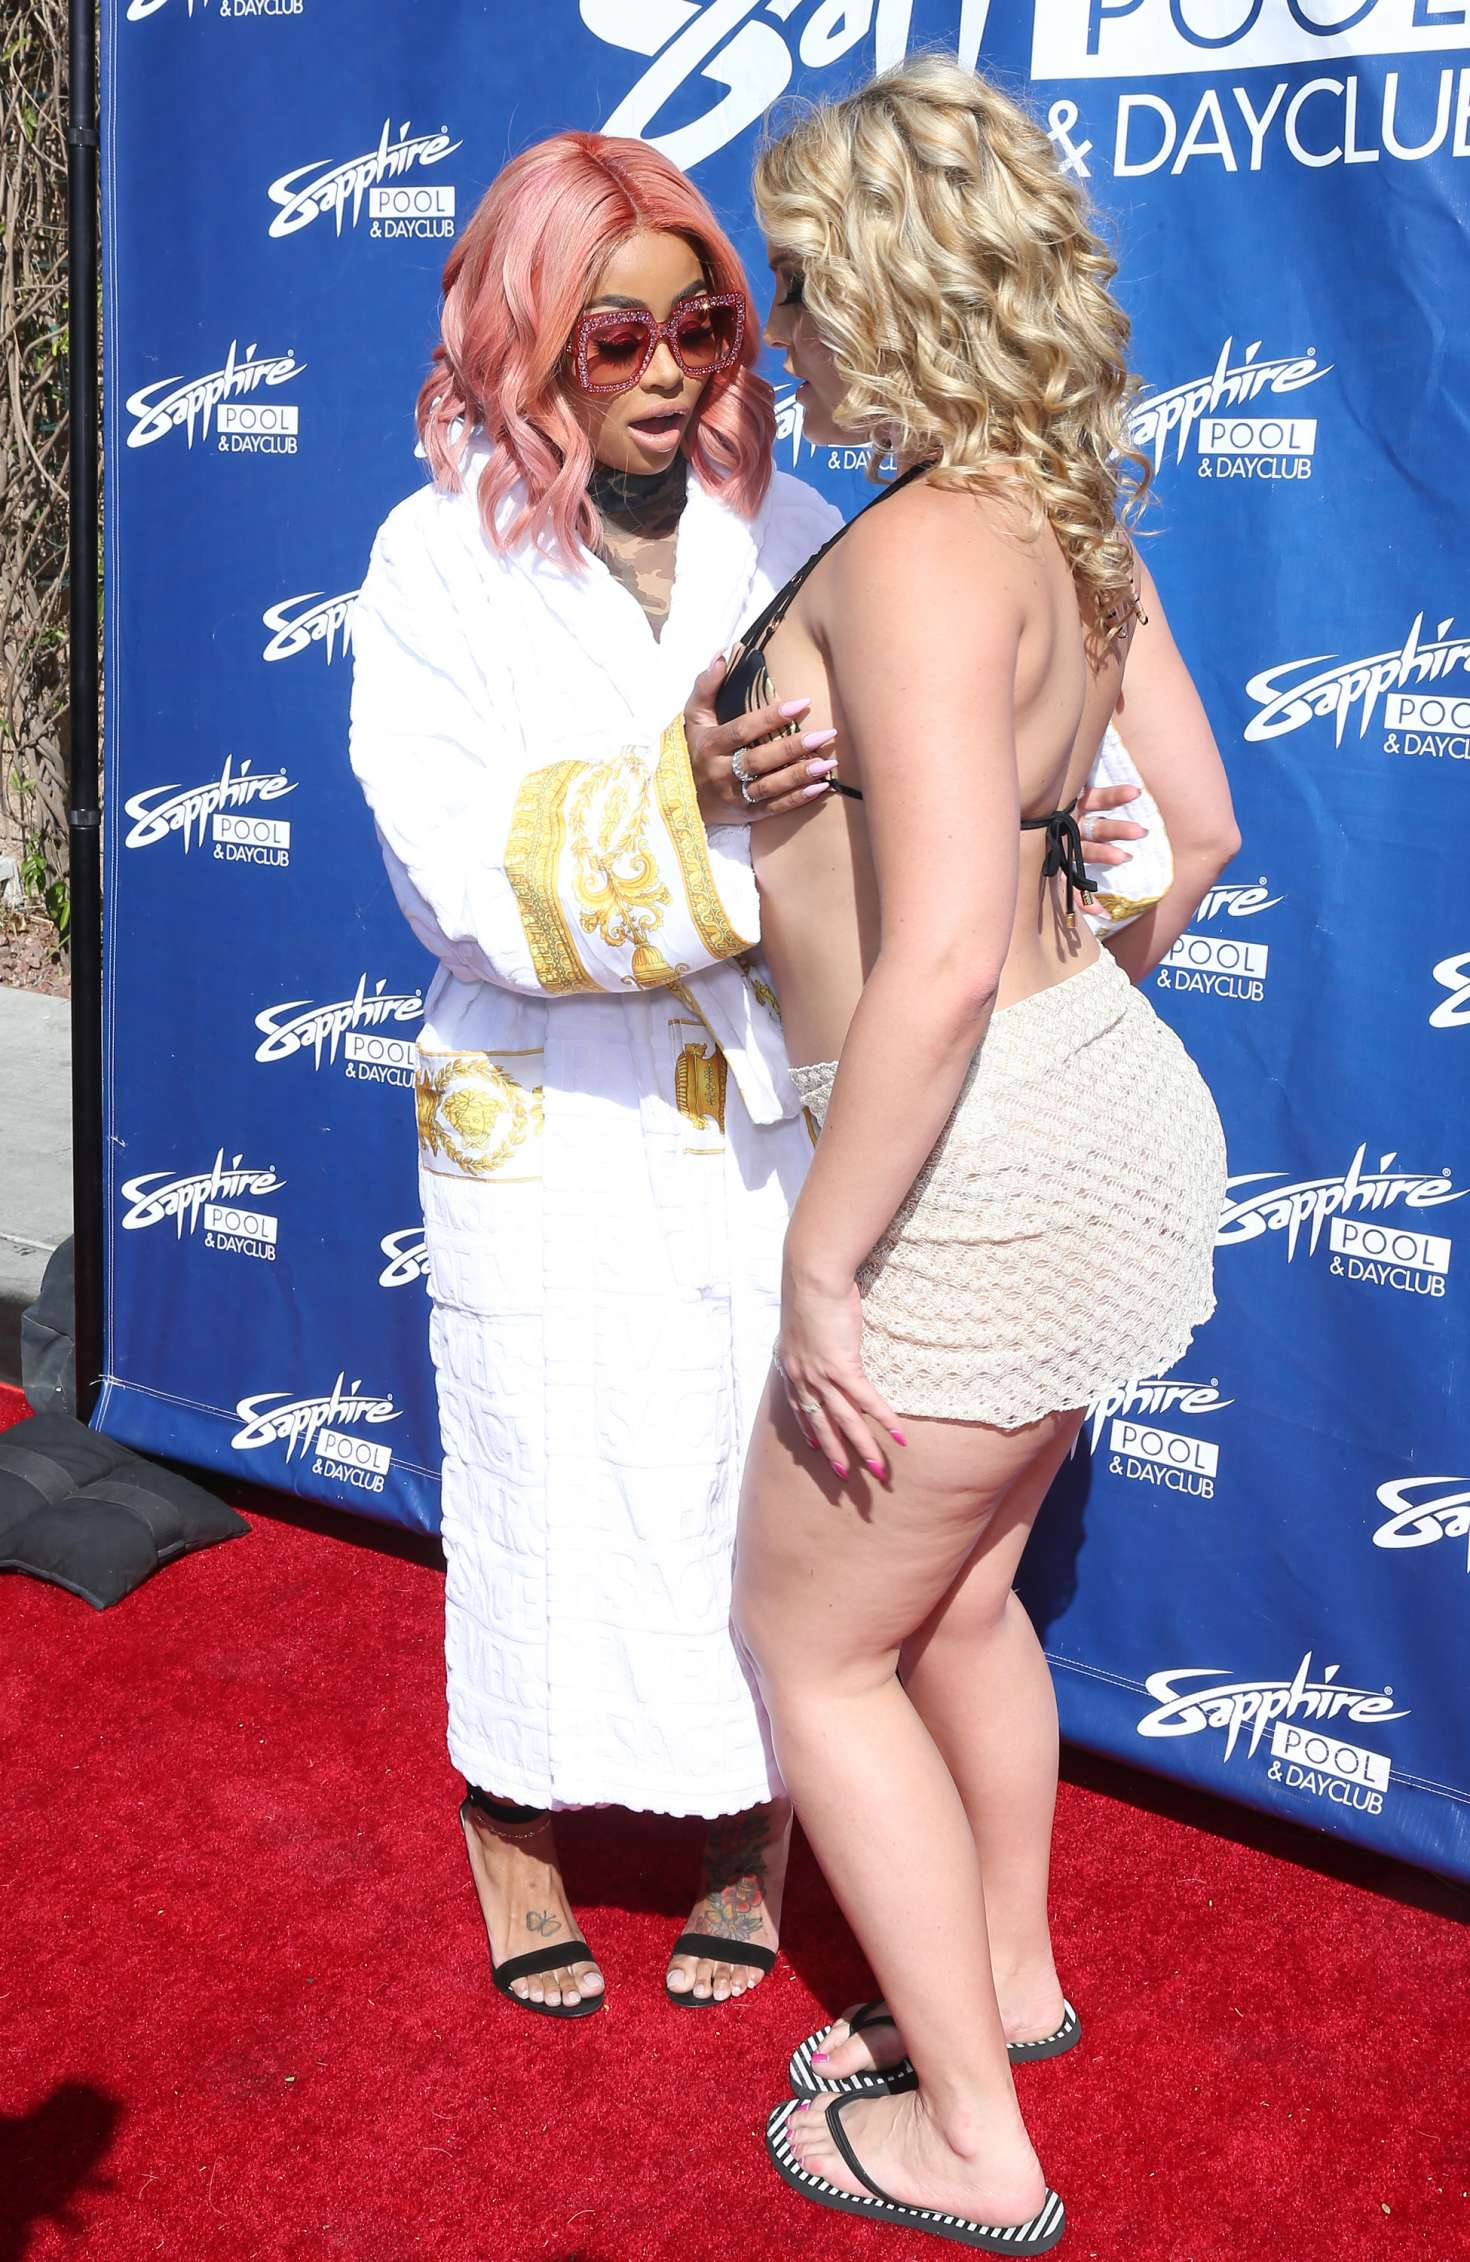 alexis texas - blac chyna hosts the afternoon at sapphire pool in